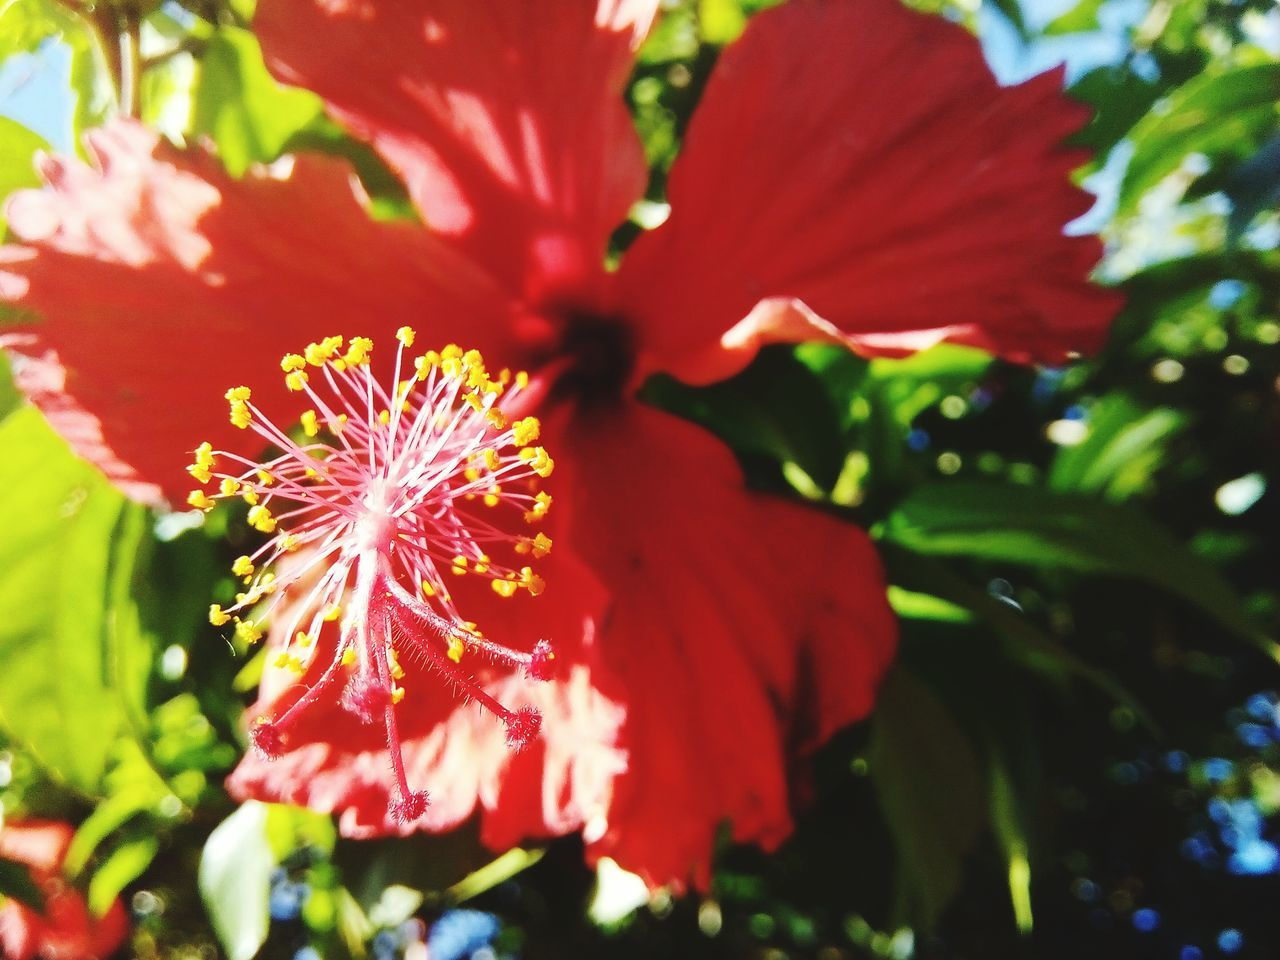 flower, red, growth, nature, petal, beauty in nature, fragility, flower head, plant, freshness, no people, outdoors, close-up, blooming, day, hibiscus